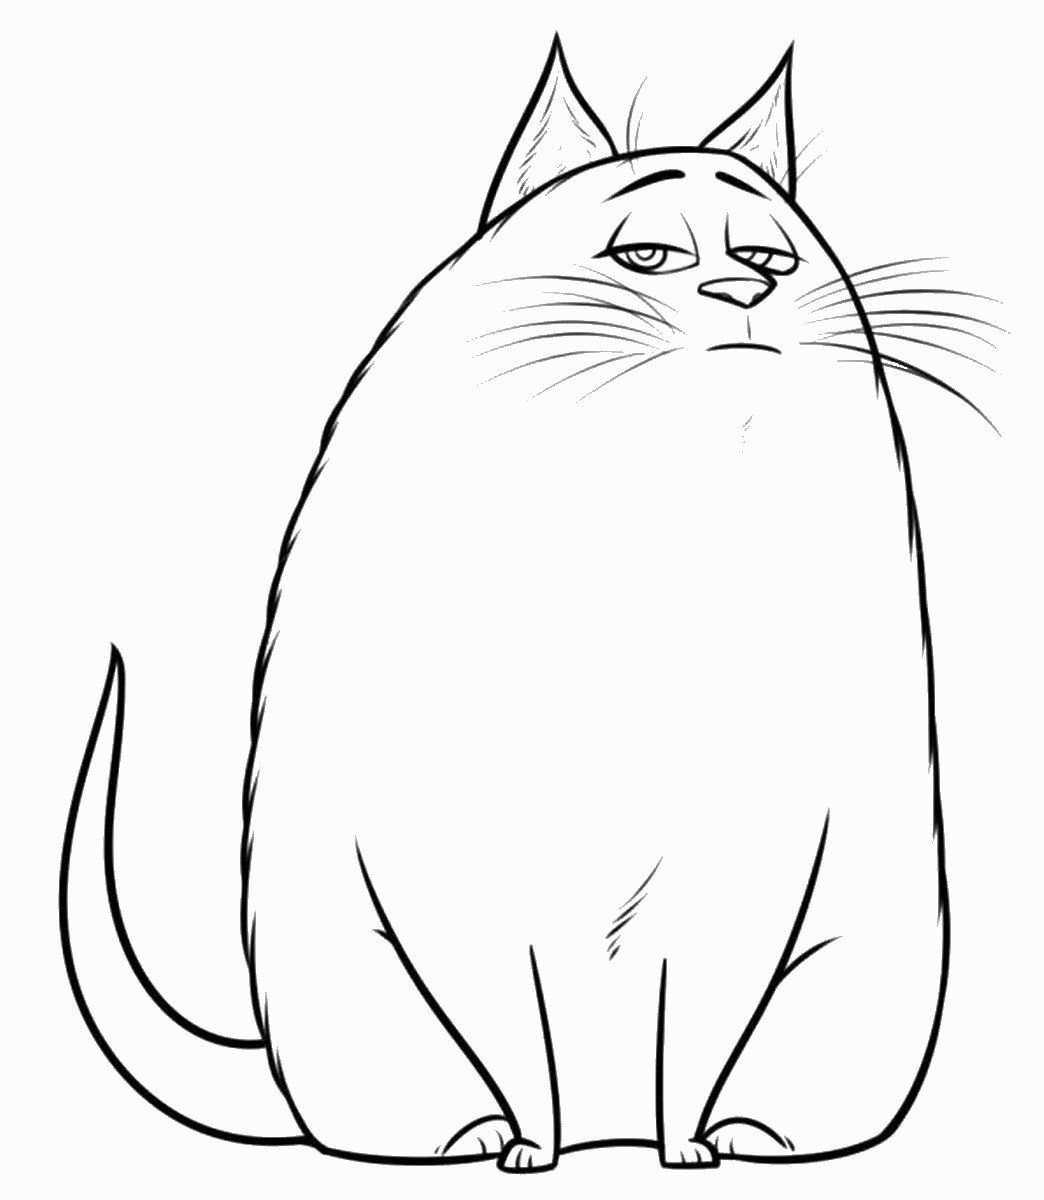 Coloring Book Fruits And Vegetables Secret Life Of Pets Cat